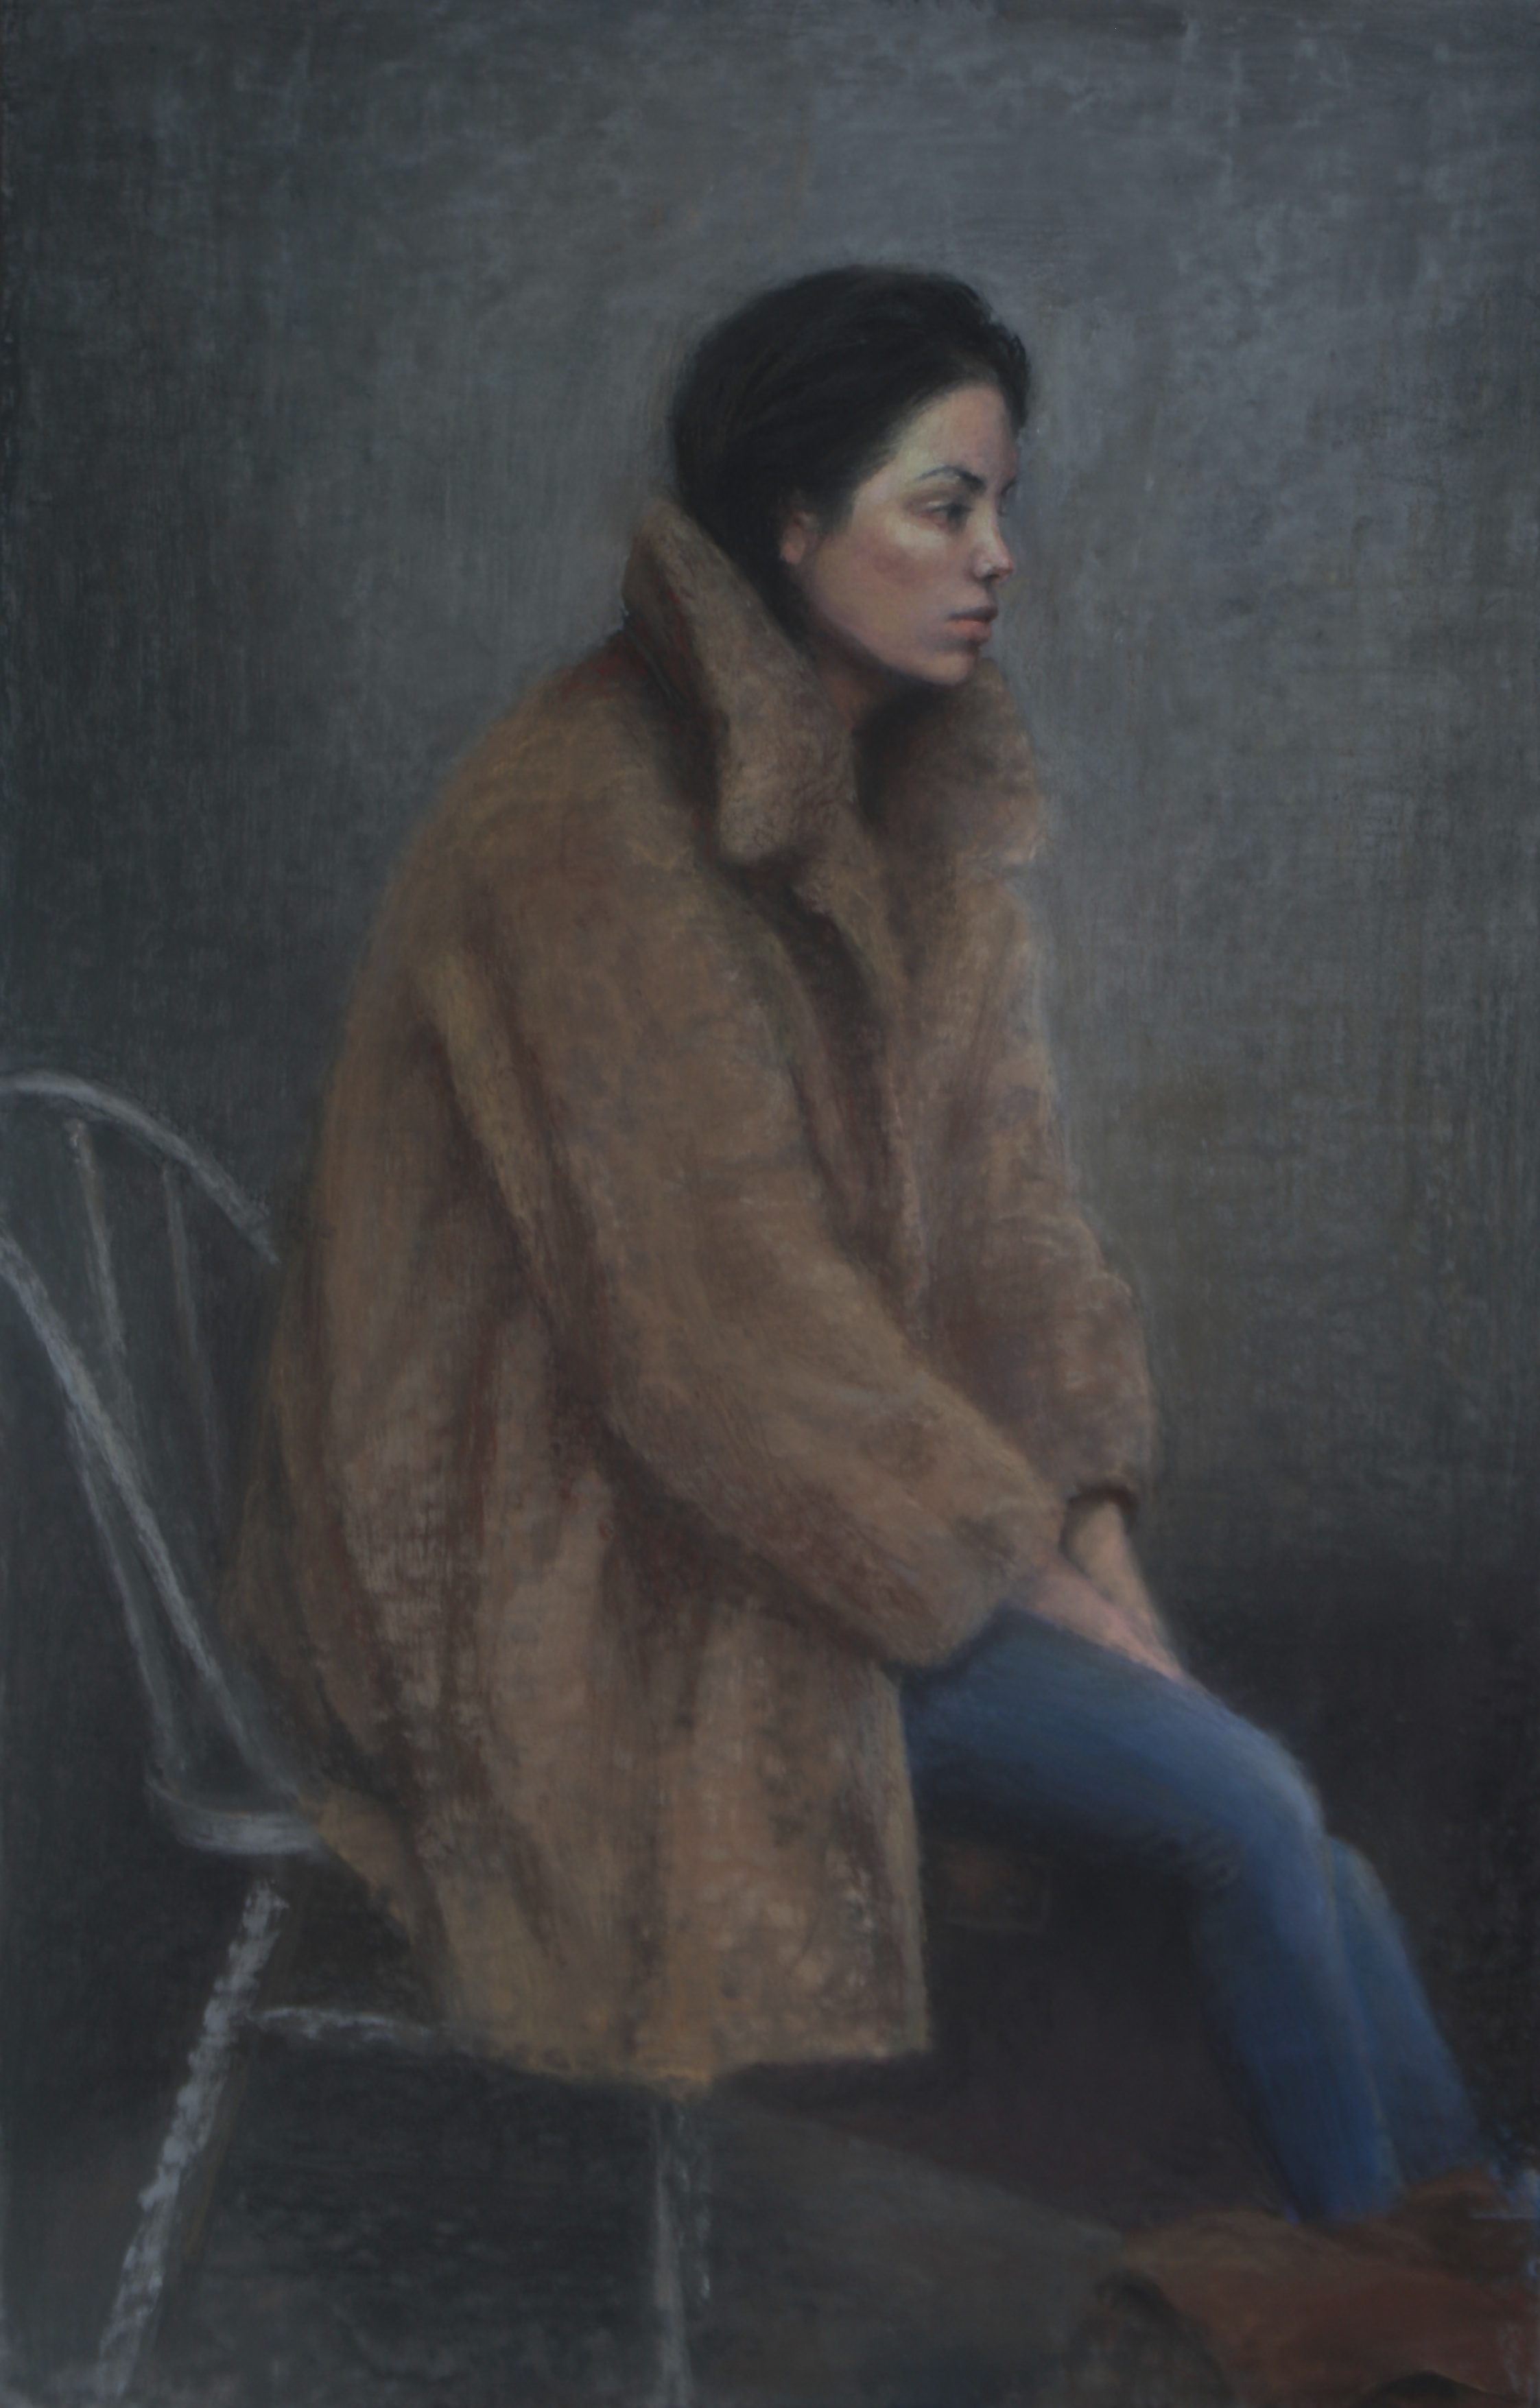 Young Lady with Jeans and Fur Coat